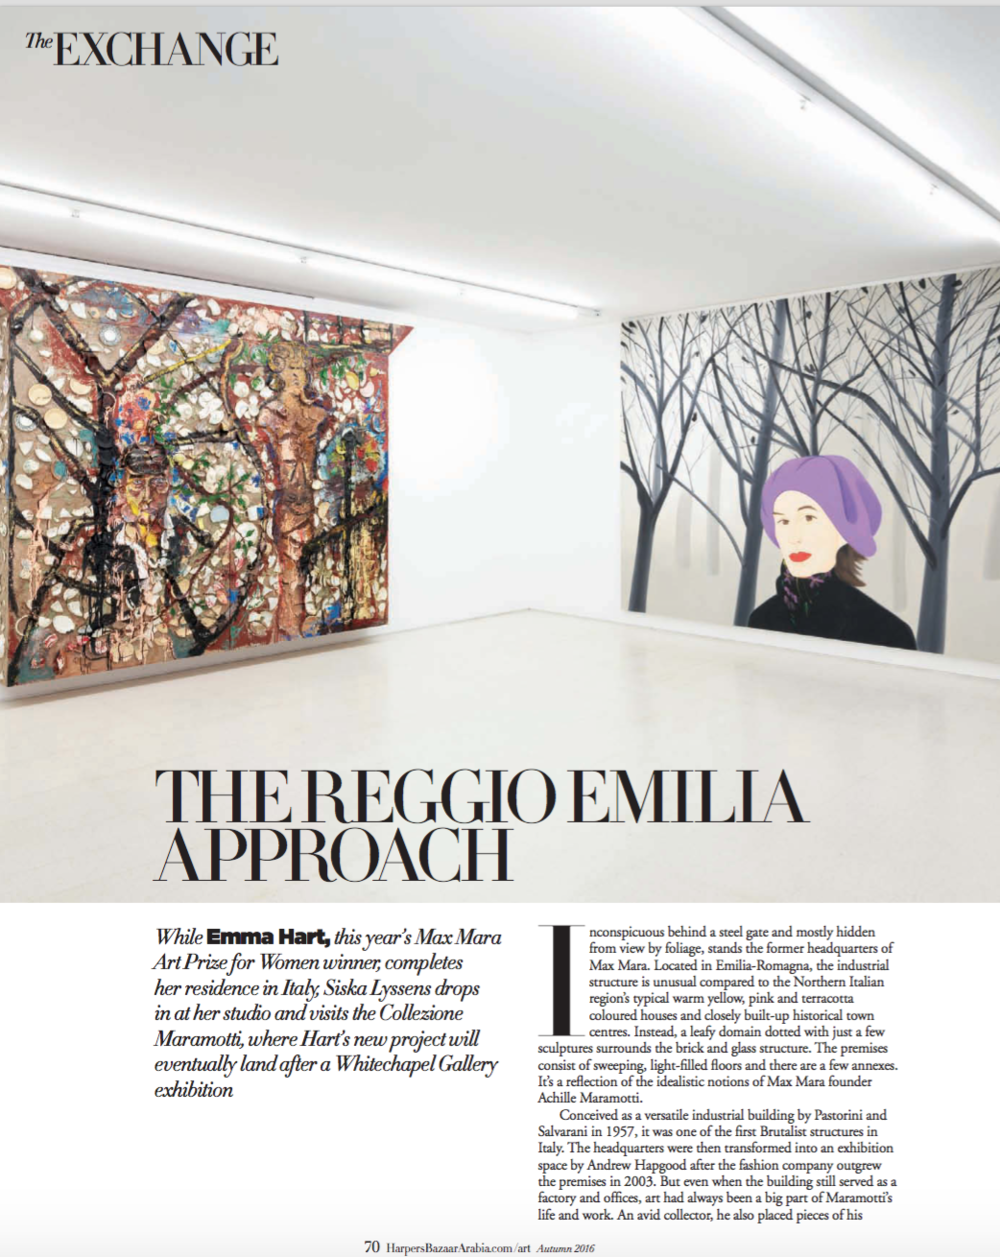 The Reggio Emilia Approach